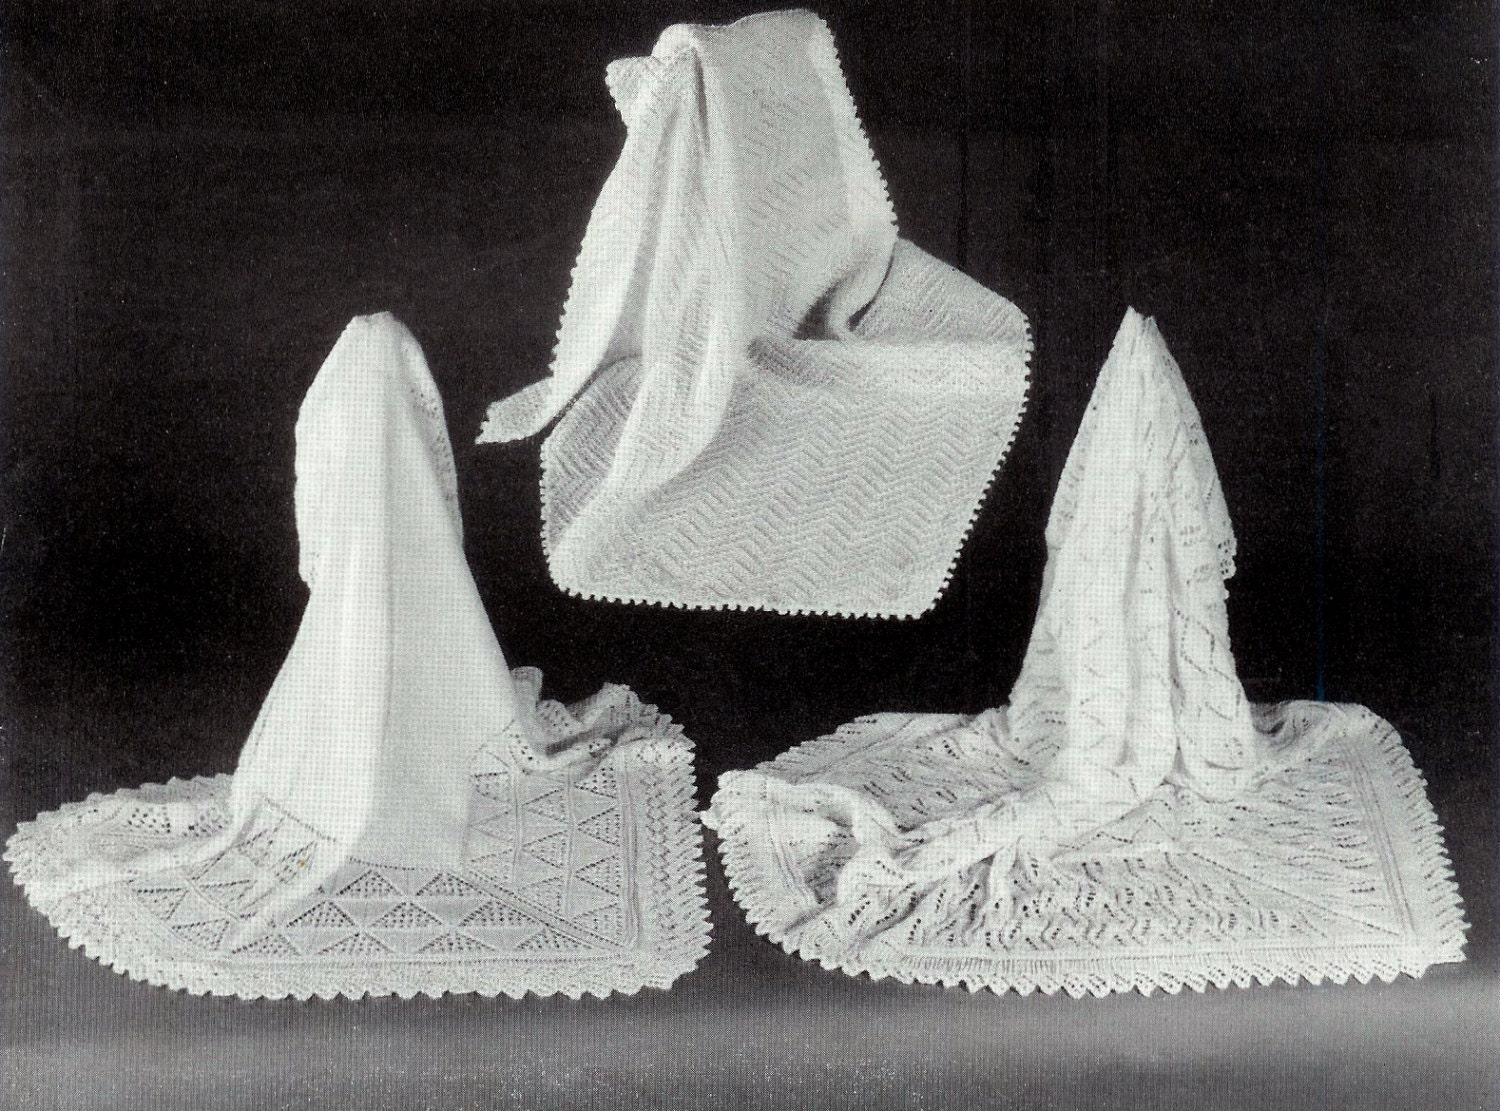 Knitting Patterns For Christening Shawls : Baby Christening Shawls 3 styles in 3ply sizes 50x50 56x56